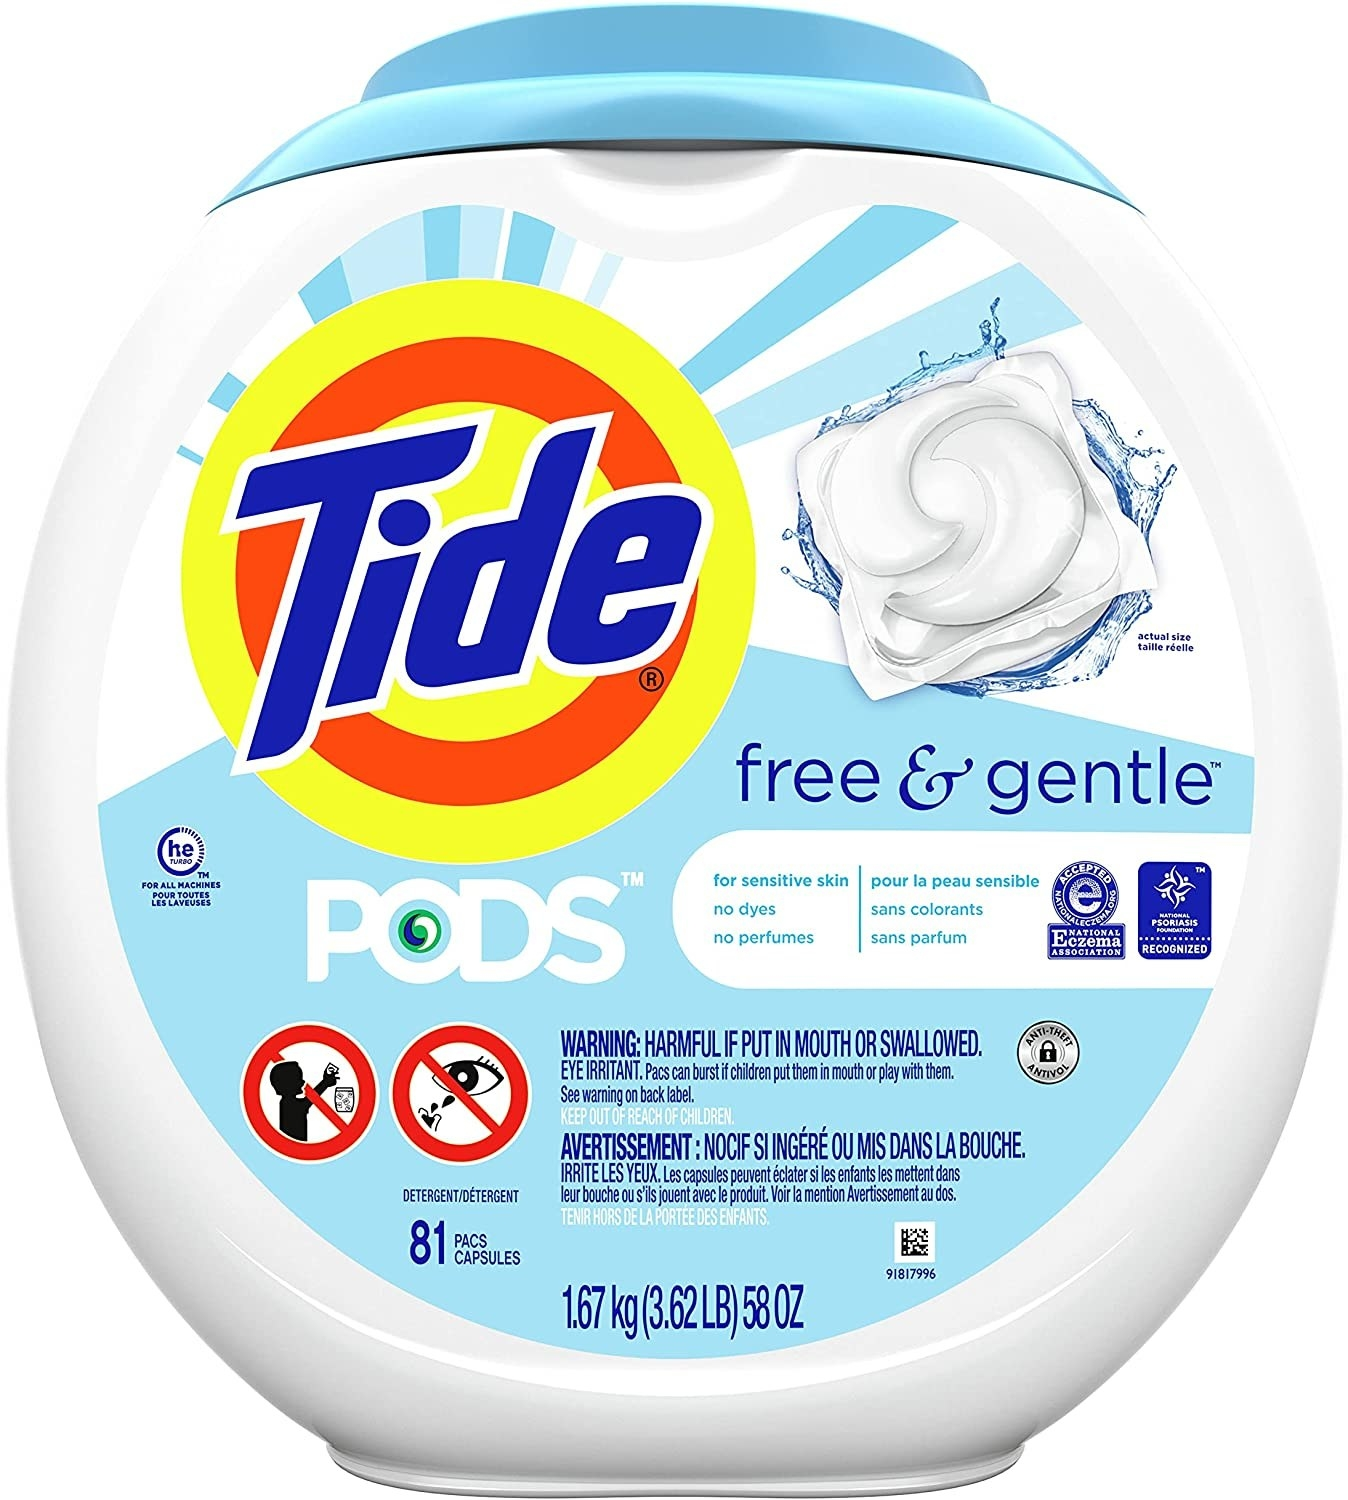 the white and blue Tide Pod packaging